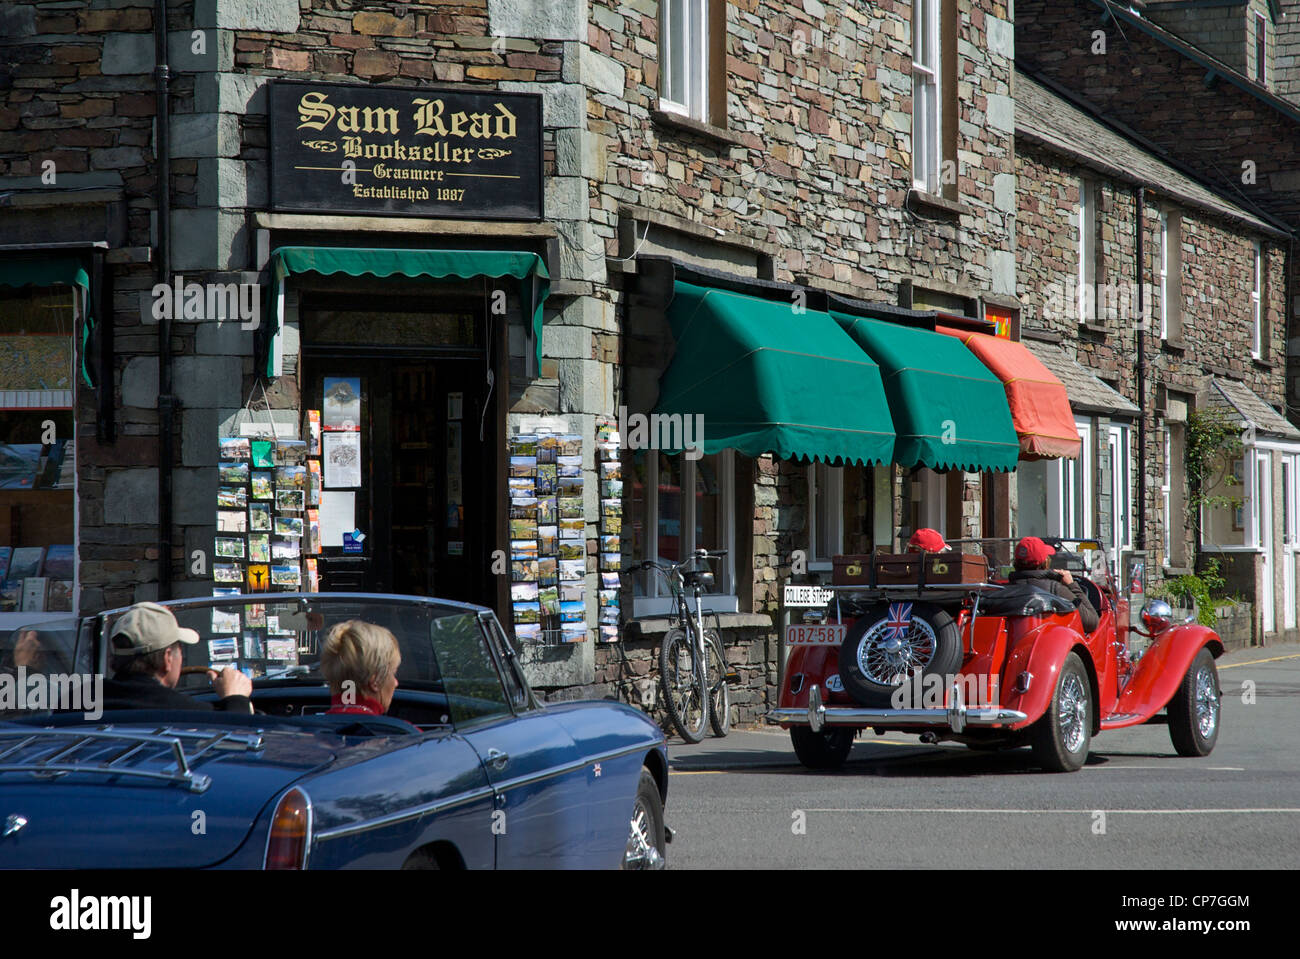 Two sports cars in the village of Grasmere, Lake District National Park, Cumbria, England UK - Stock Image